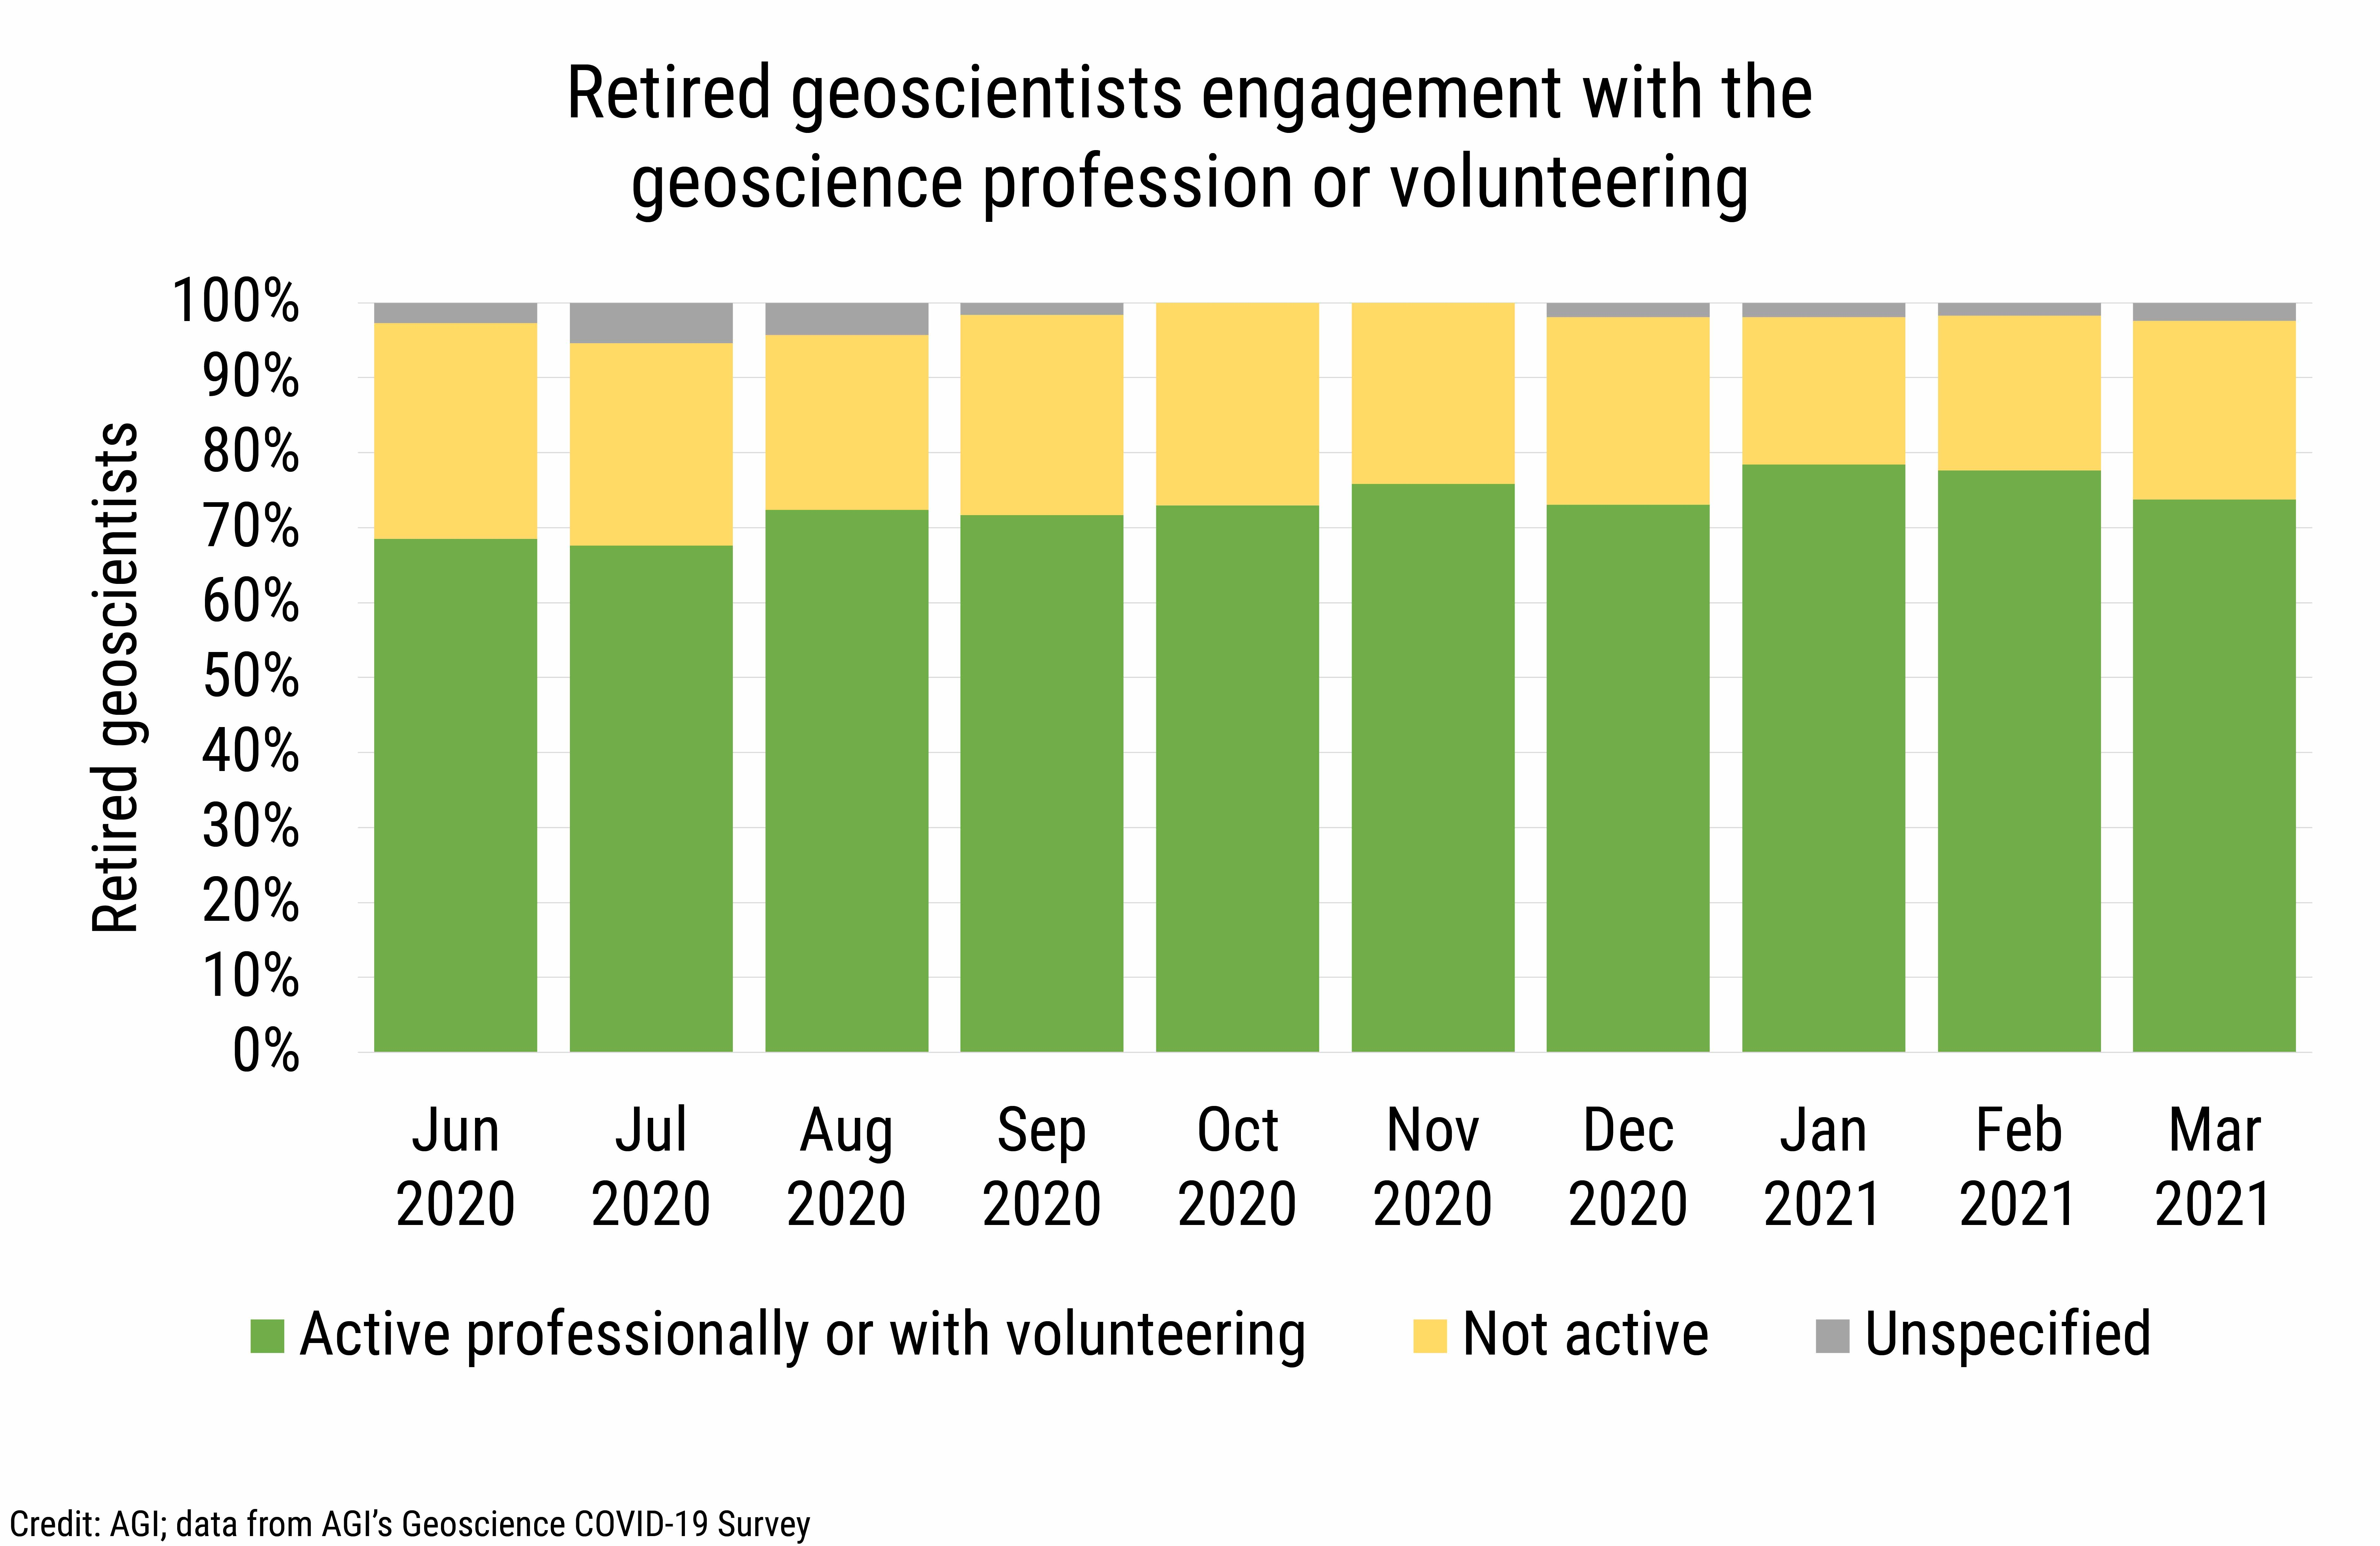 DB_2021-012 chart 01: Retired geoscientists engagement with the geoscience profession or volunteering (Credit: AGI; data from AGI's Geoscience COVID-19 Survey)